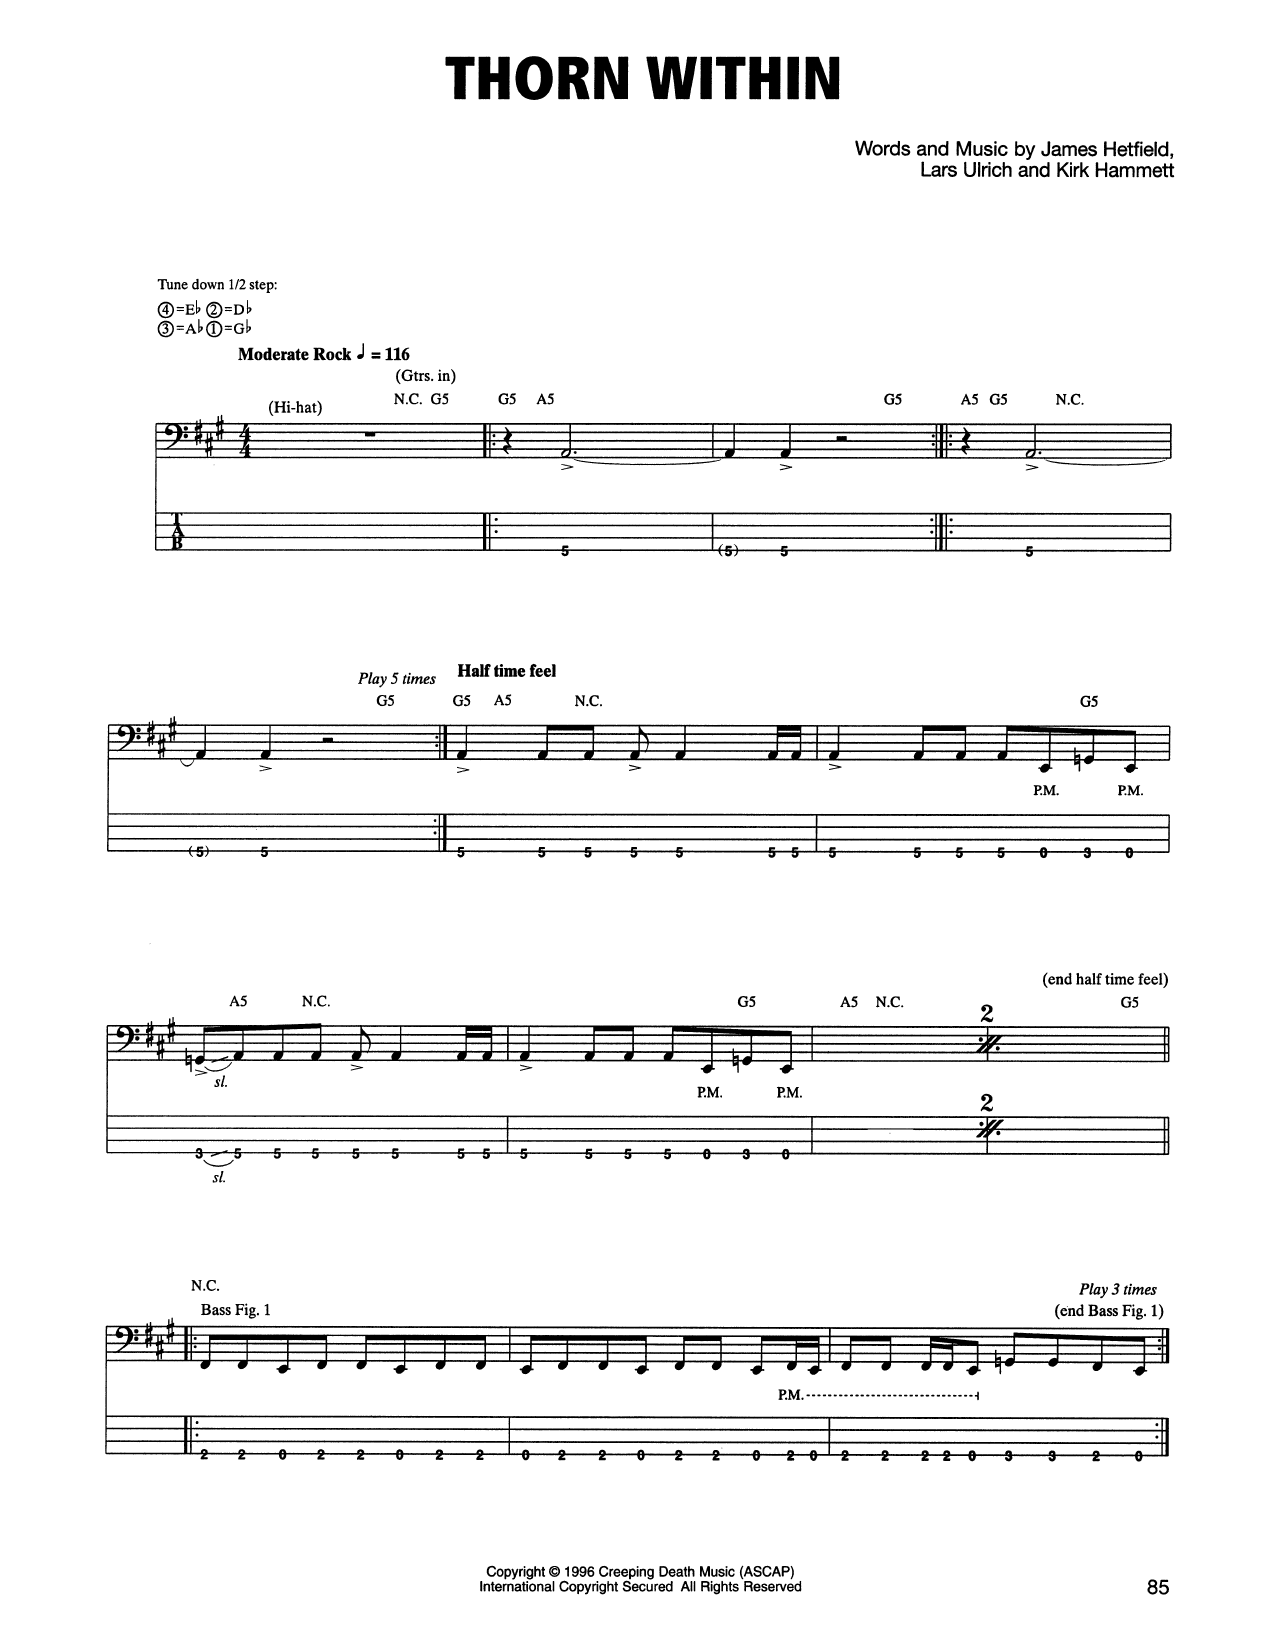 Tablature guitare The Thorn Within de Metallica - Tablature Basse